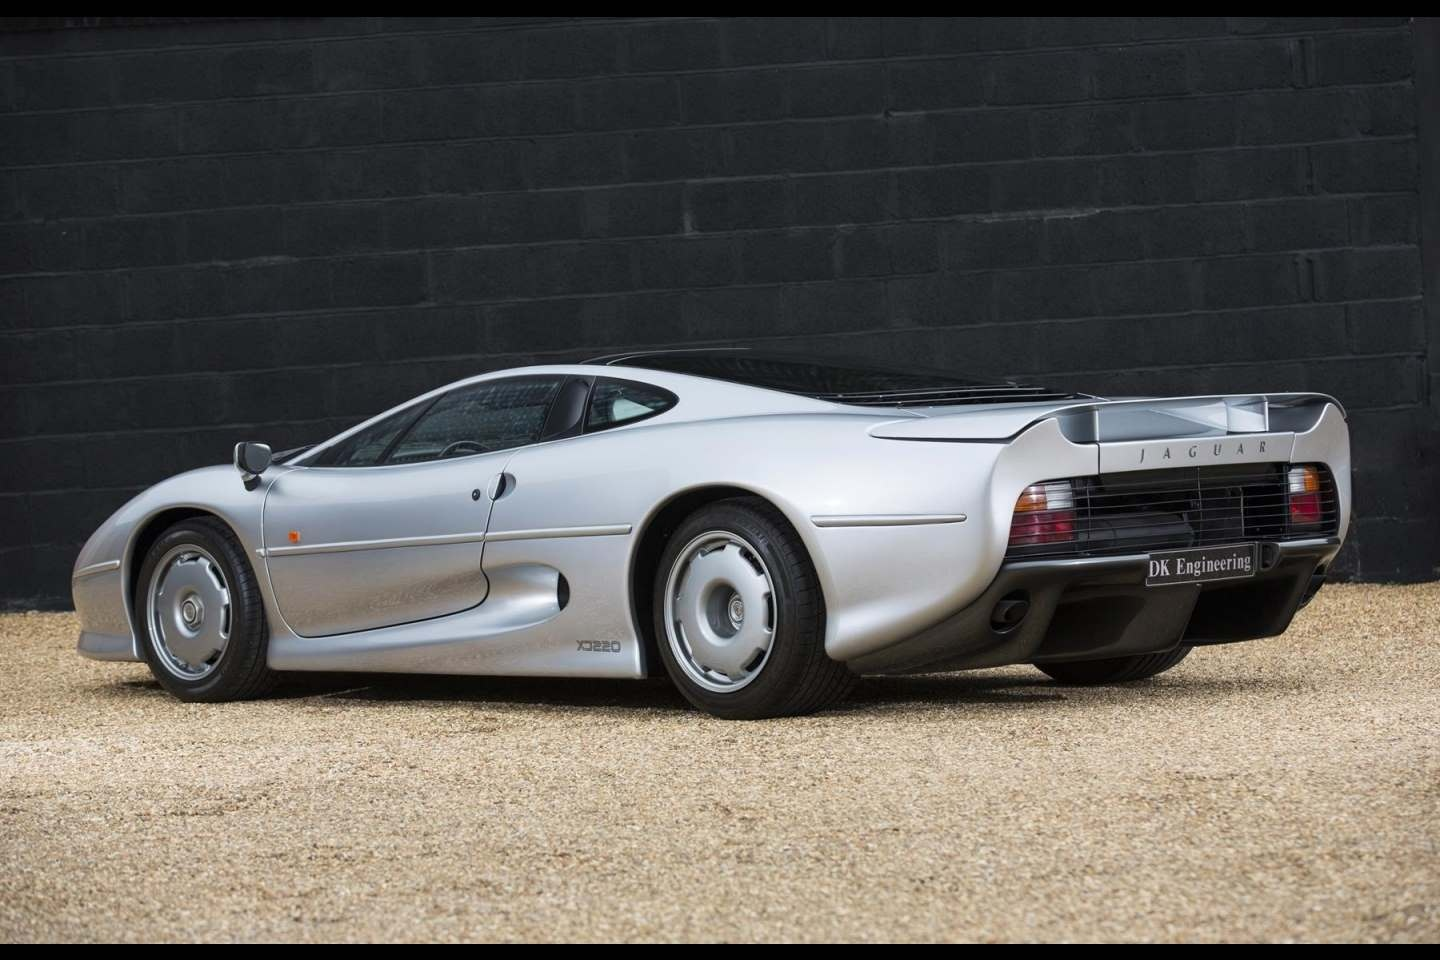 jaguar xj220 for sale vehicle sales dk engineering. Black Bedroom Furniture Sets. Home Design Ideas